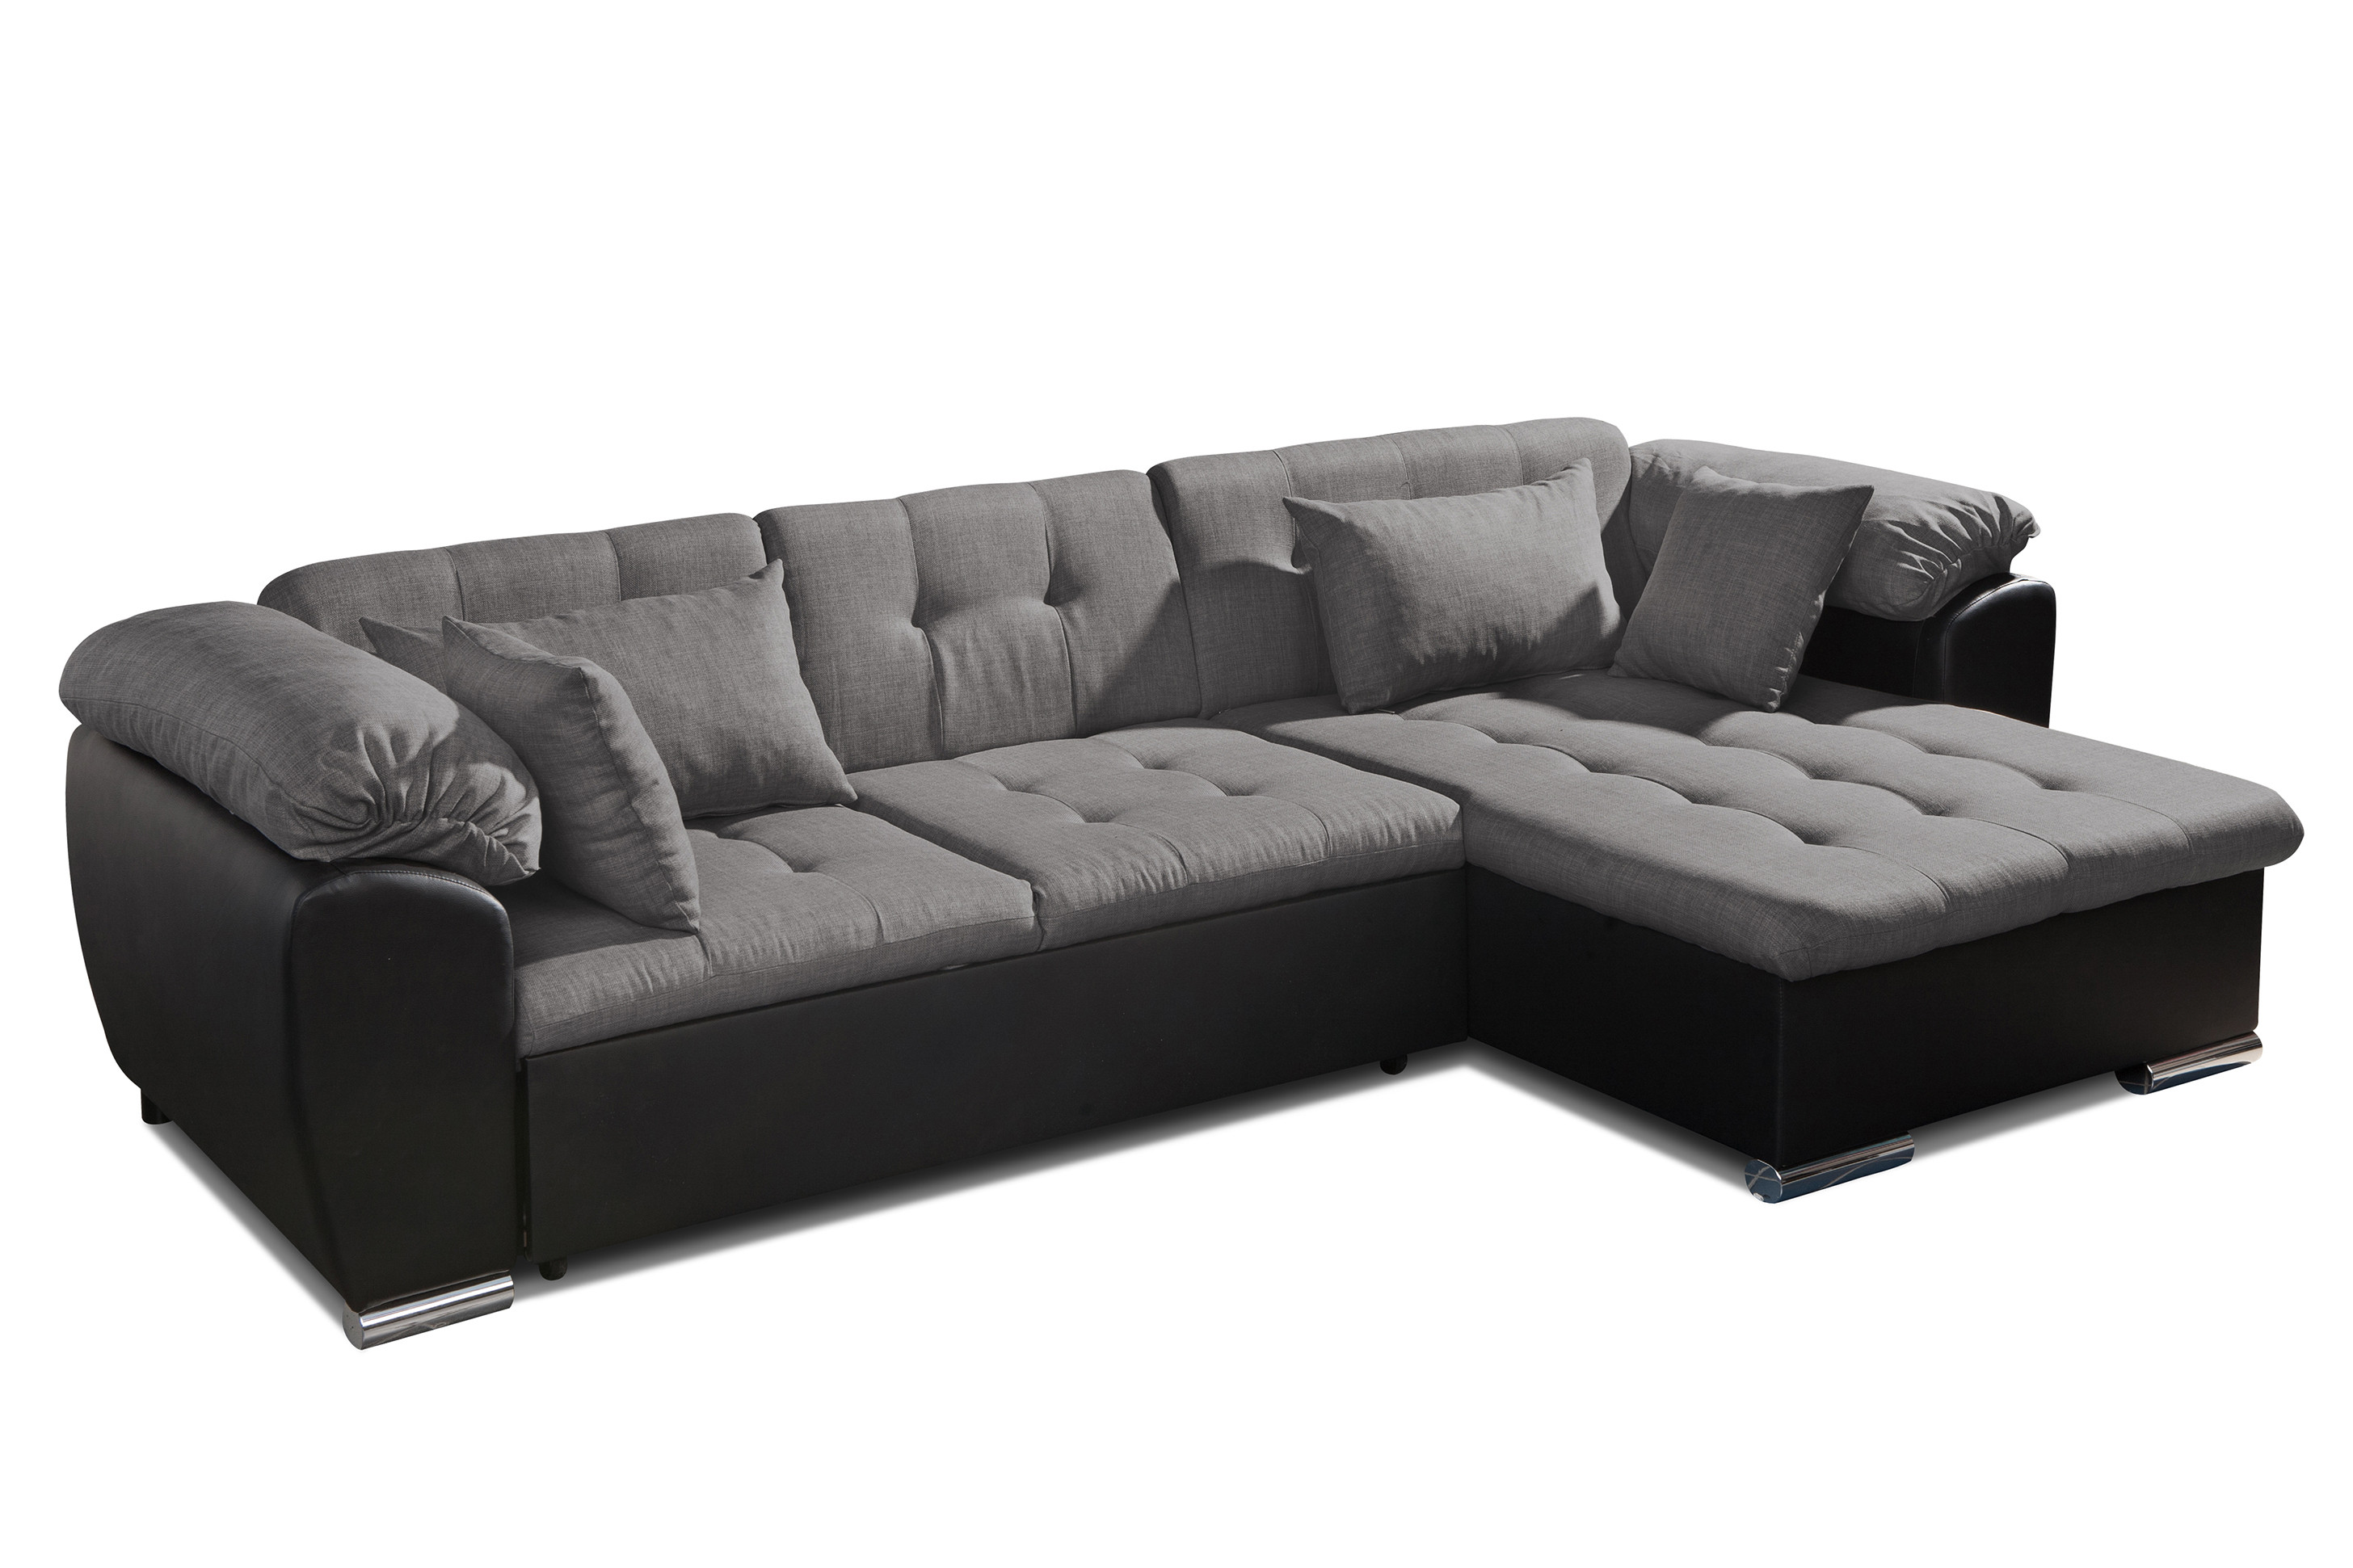 Best ideas about Sofa Bed Sectional . Save or Pin Leather Corner Sofa Beds Uk Surferoaxaca Now.